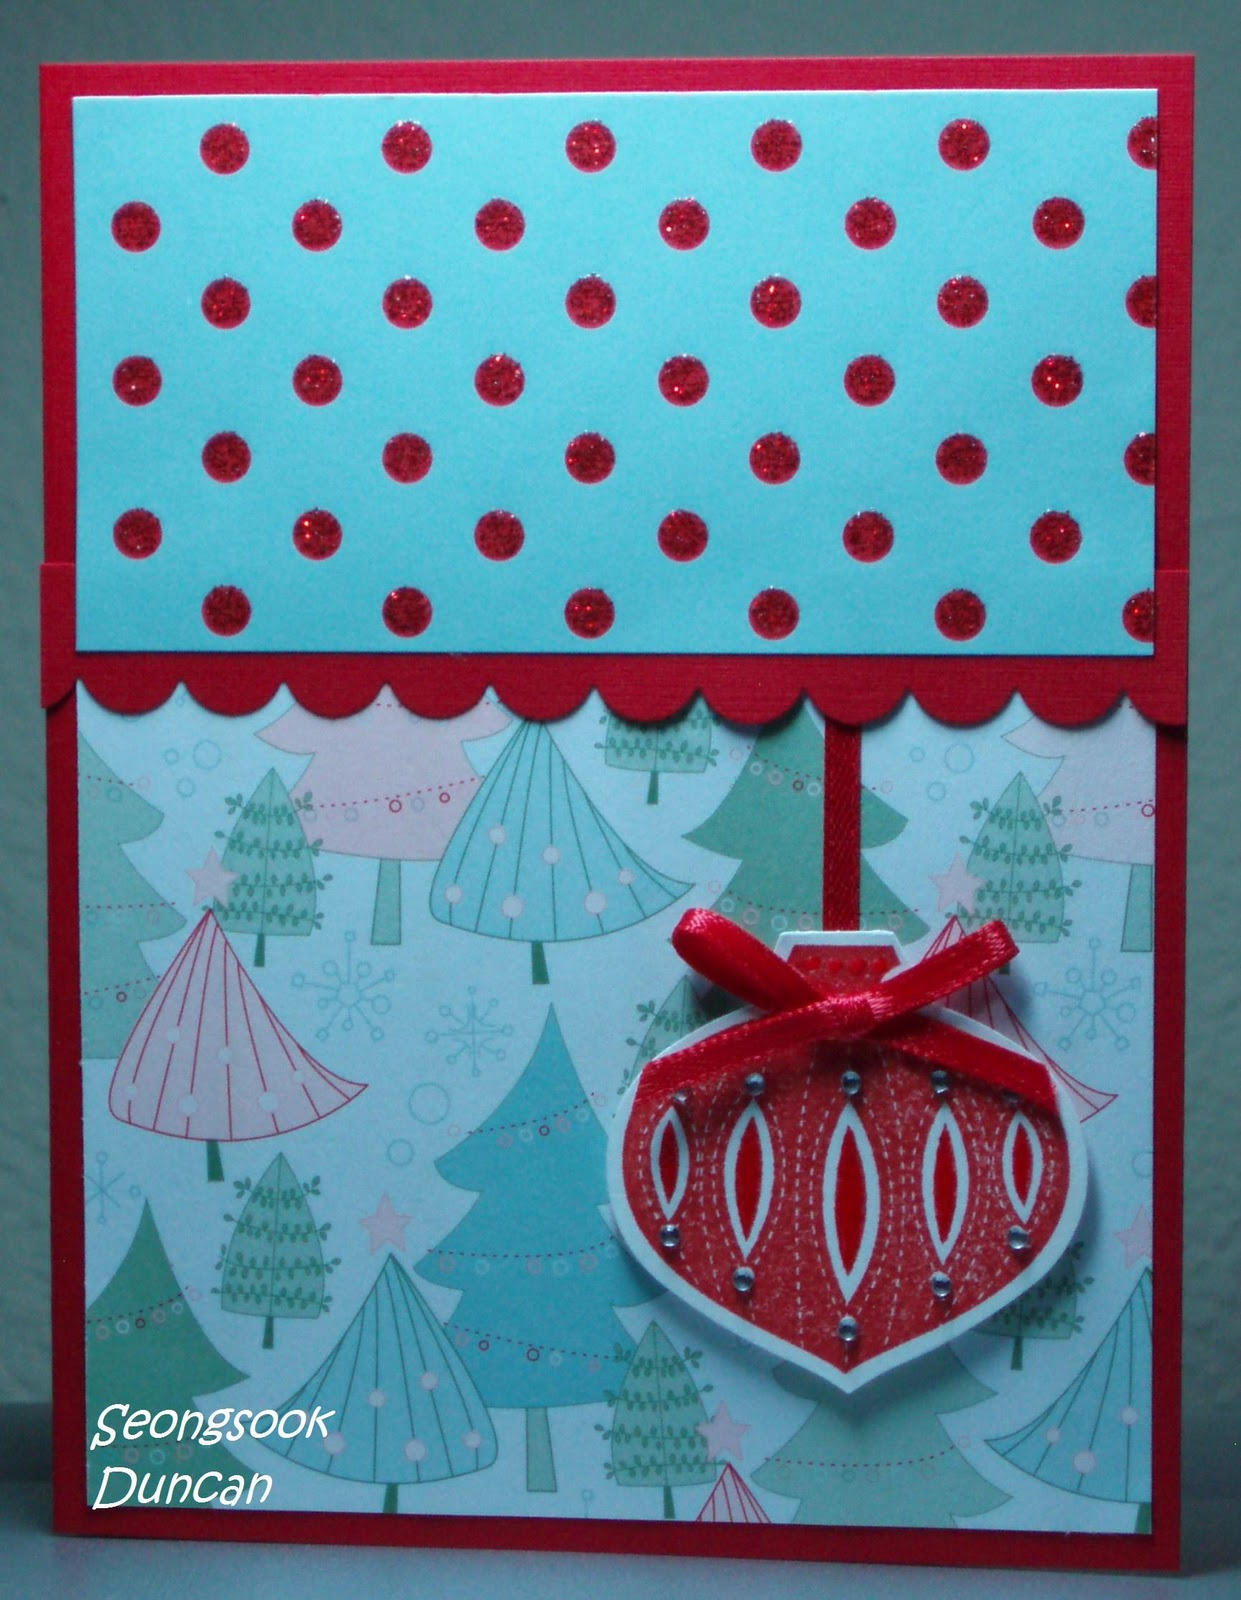 ... Creations... My Therapy, Your Cards!: 2 Christmas Cards for Challenges: seongsookduncan.blogspot.com/2010/11/2-christmas-cards-for...